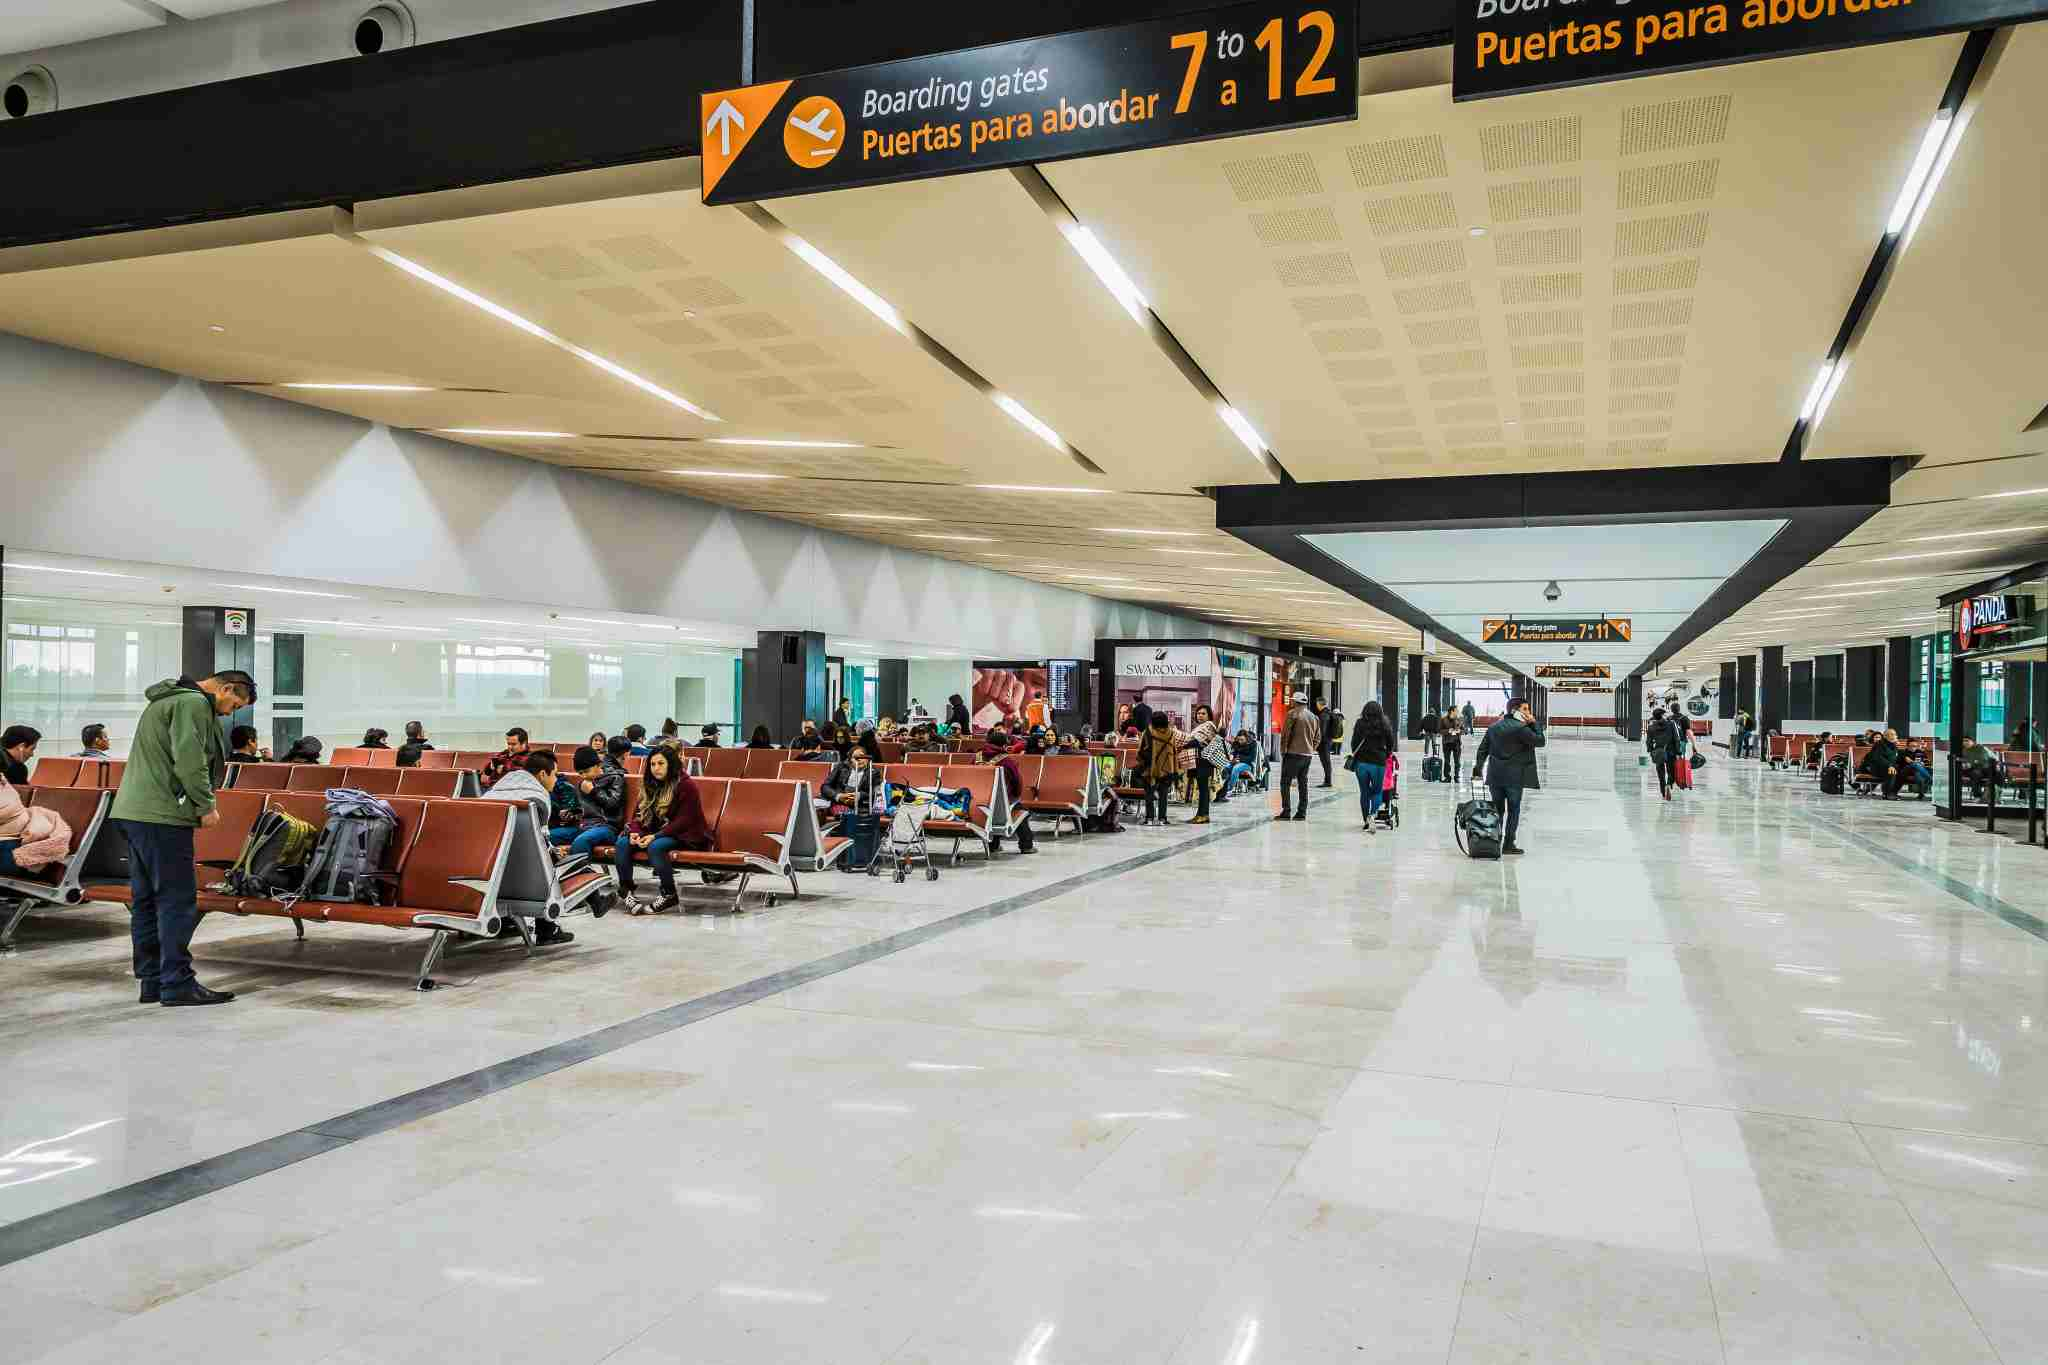 Exiting the CBX area into the Tijuana Airport, travelers walk directly into the boarding gates area. (Photo courtesy of CBX).